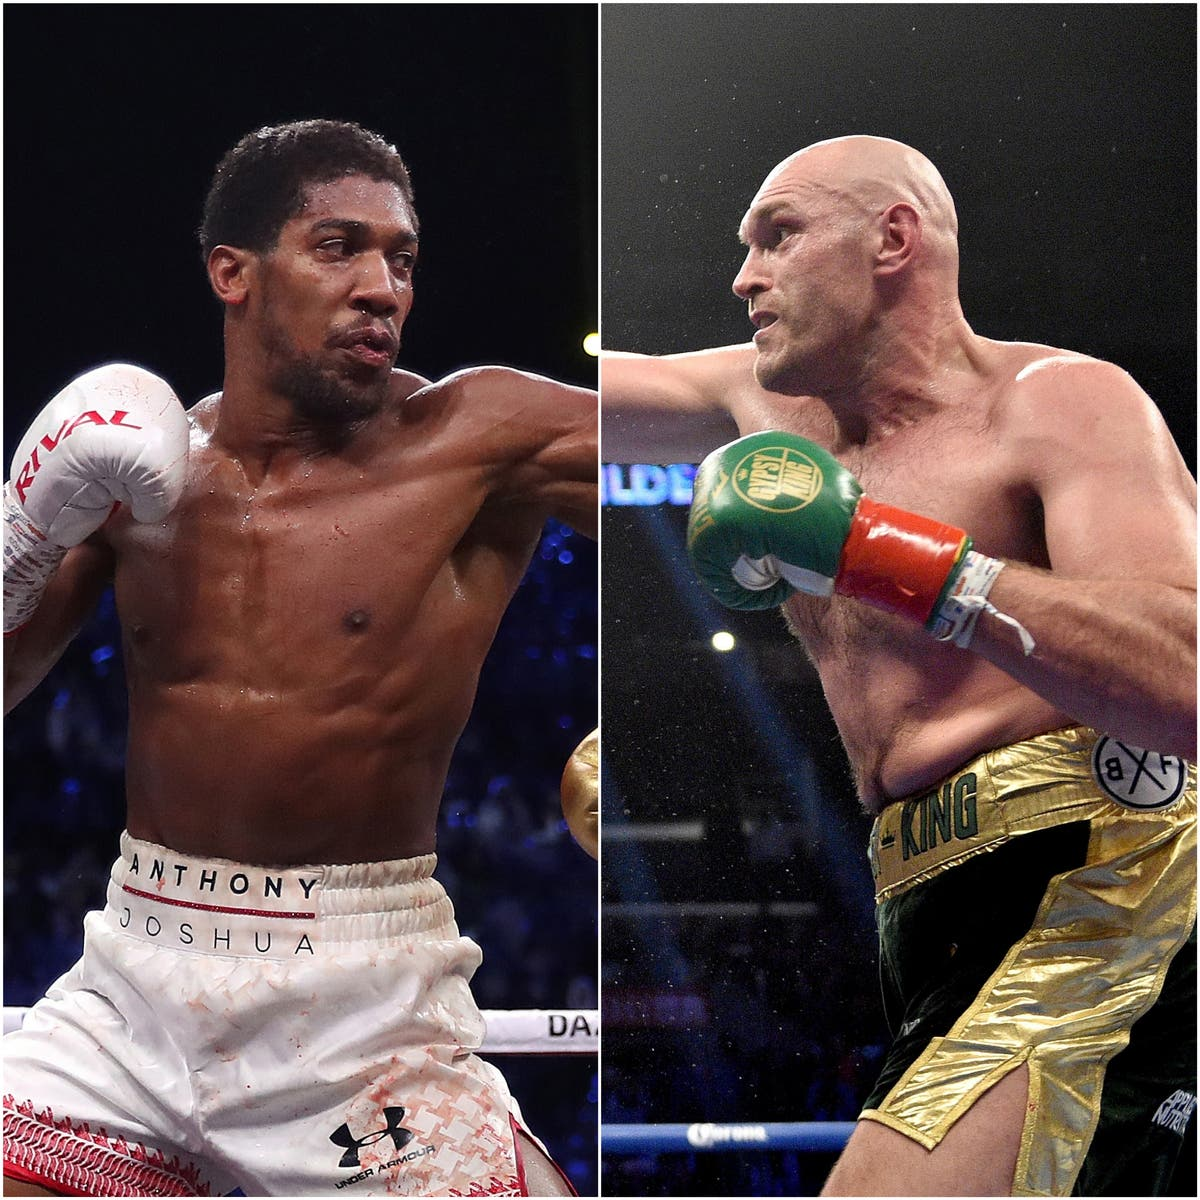 Anthony Joshua in dig at Tyson Fury as Oleksandr Usyk fight looms